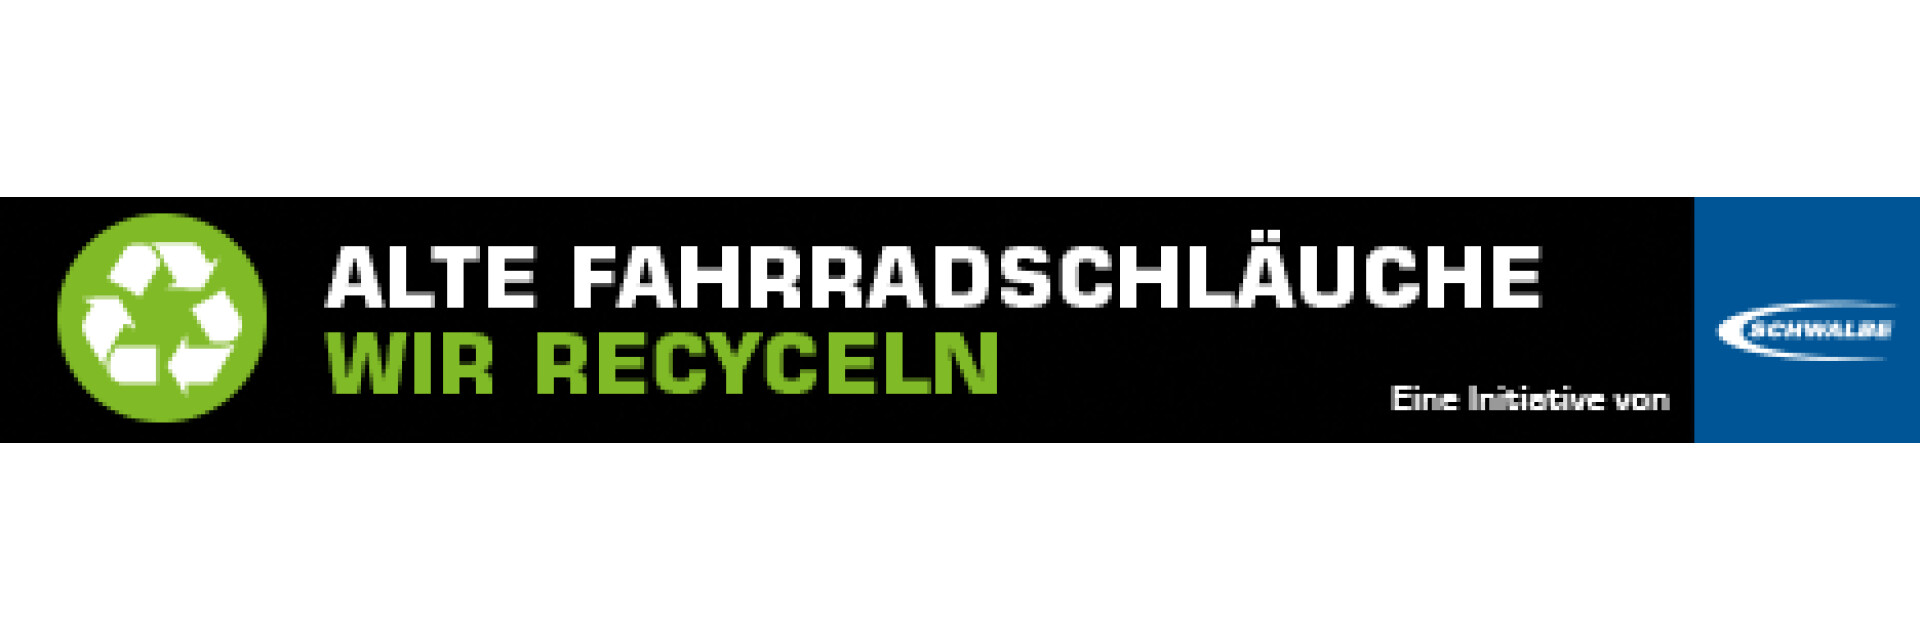 Schlauch Recycling